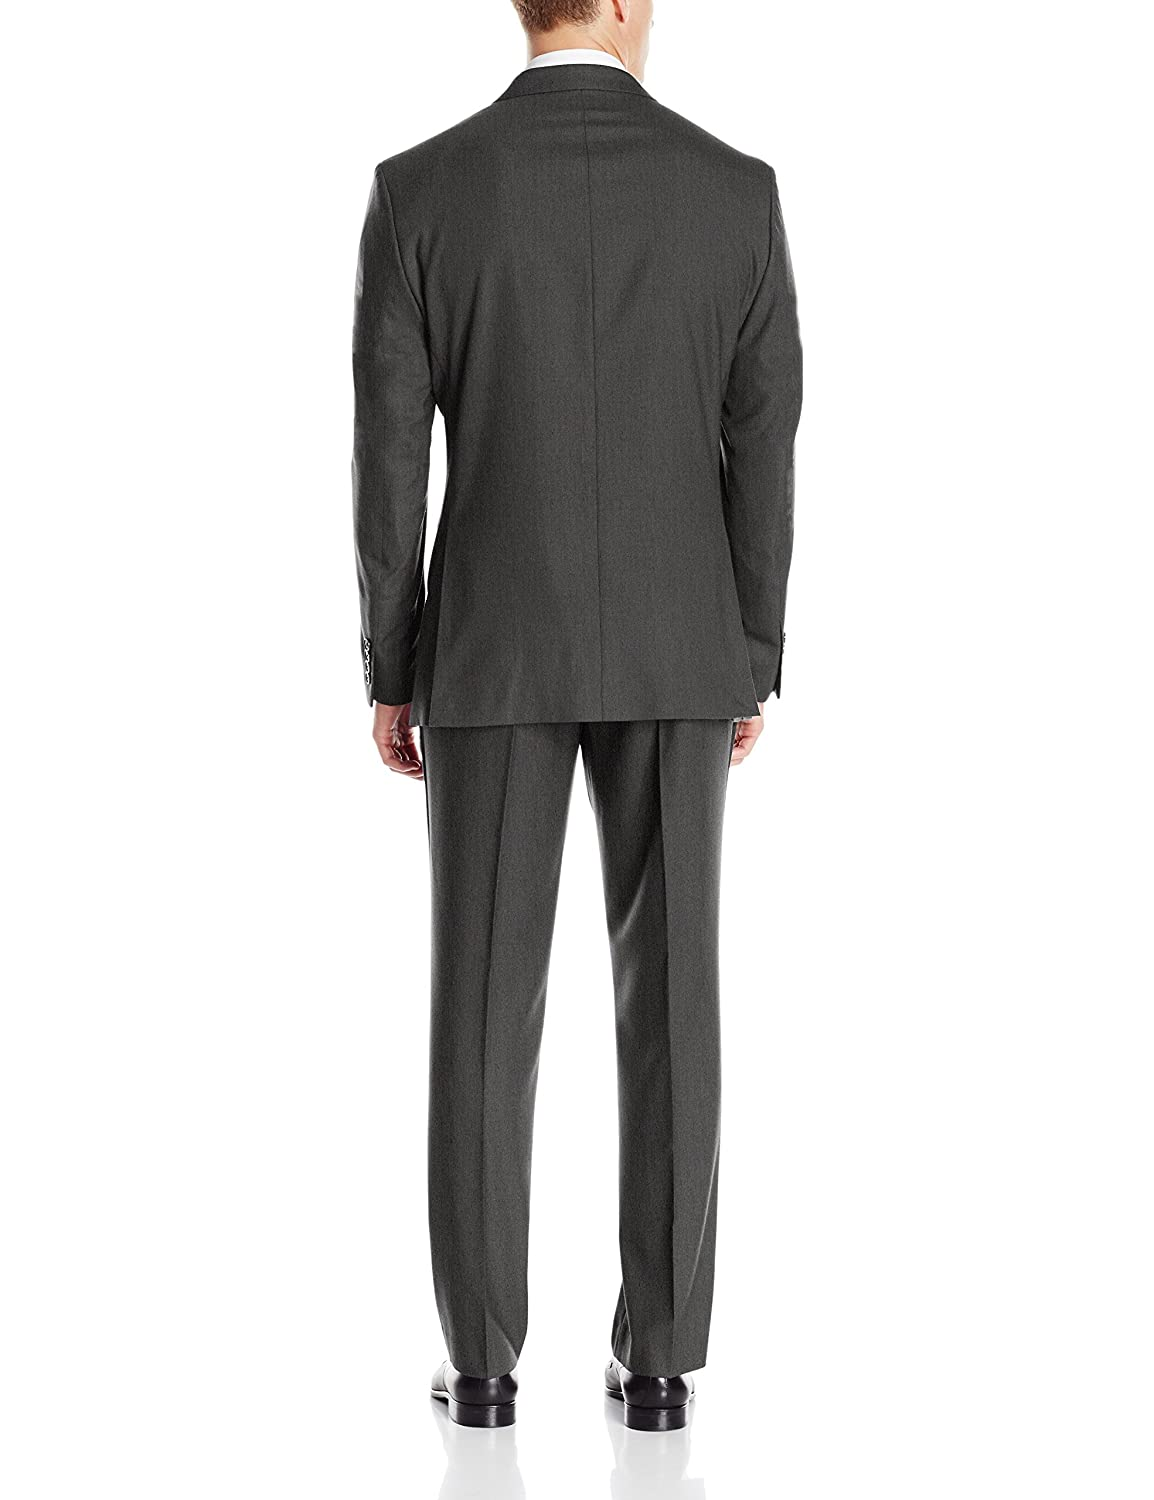 Perry Ellis Mens Slim Fit Suit w/ Hemmed Pant